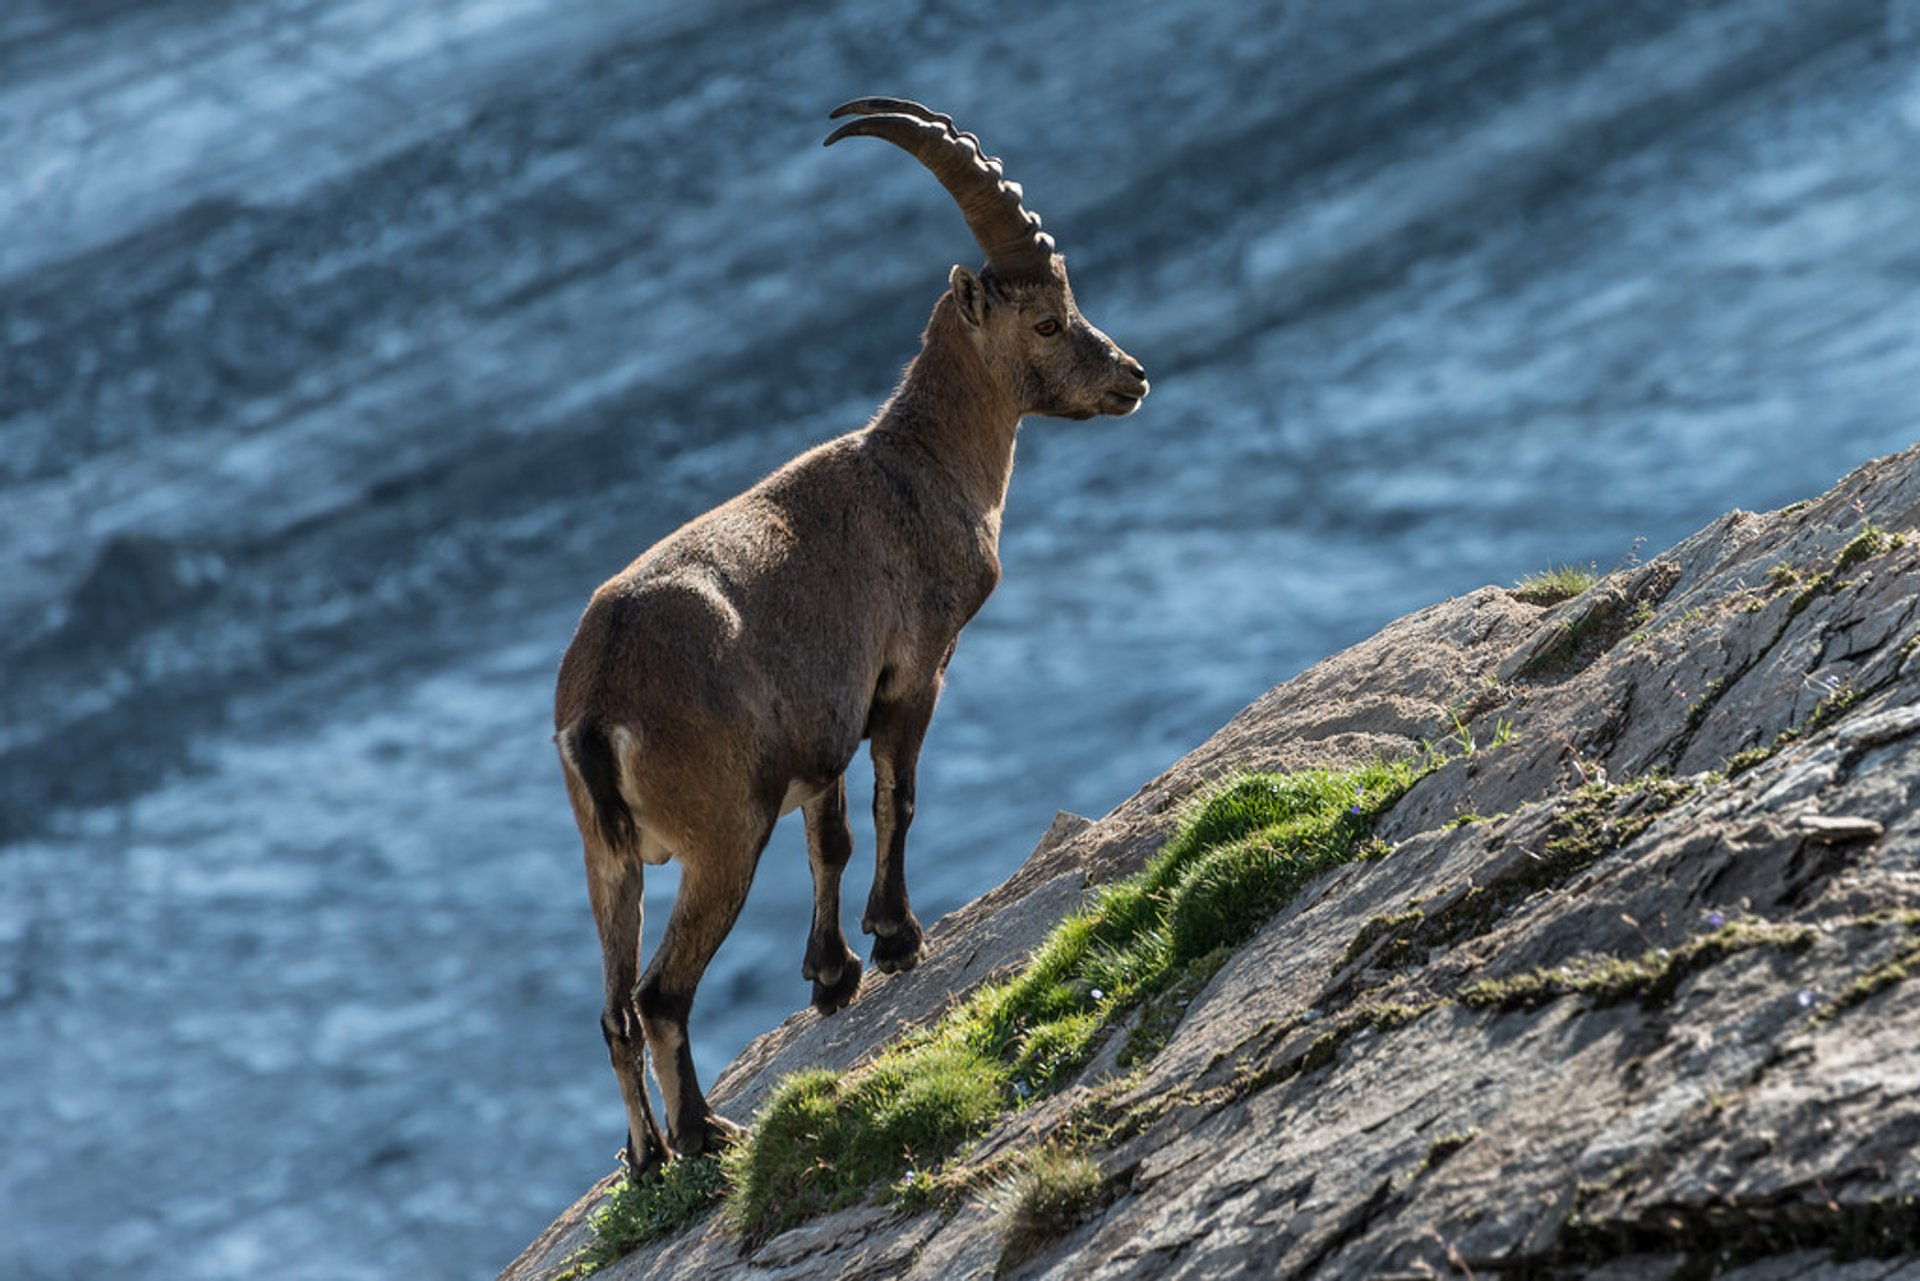 Alpine Ibex in Austria 2019 - Best Time